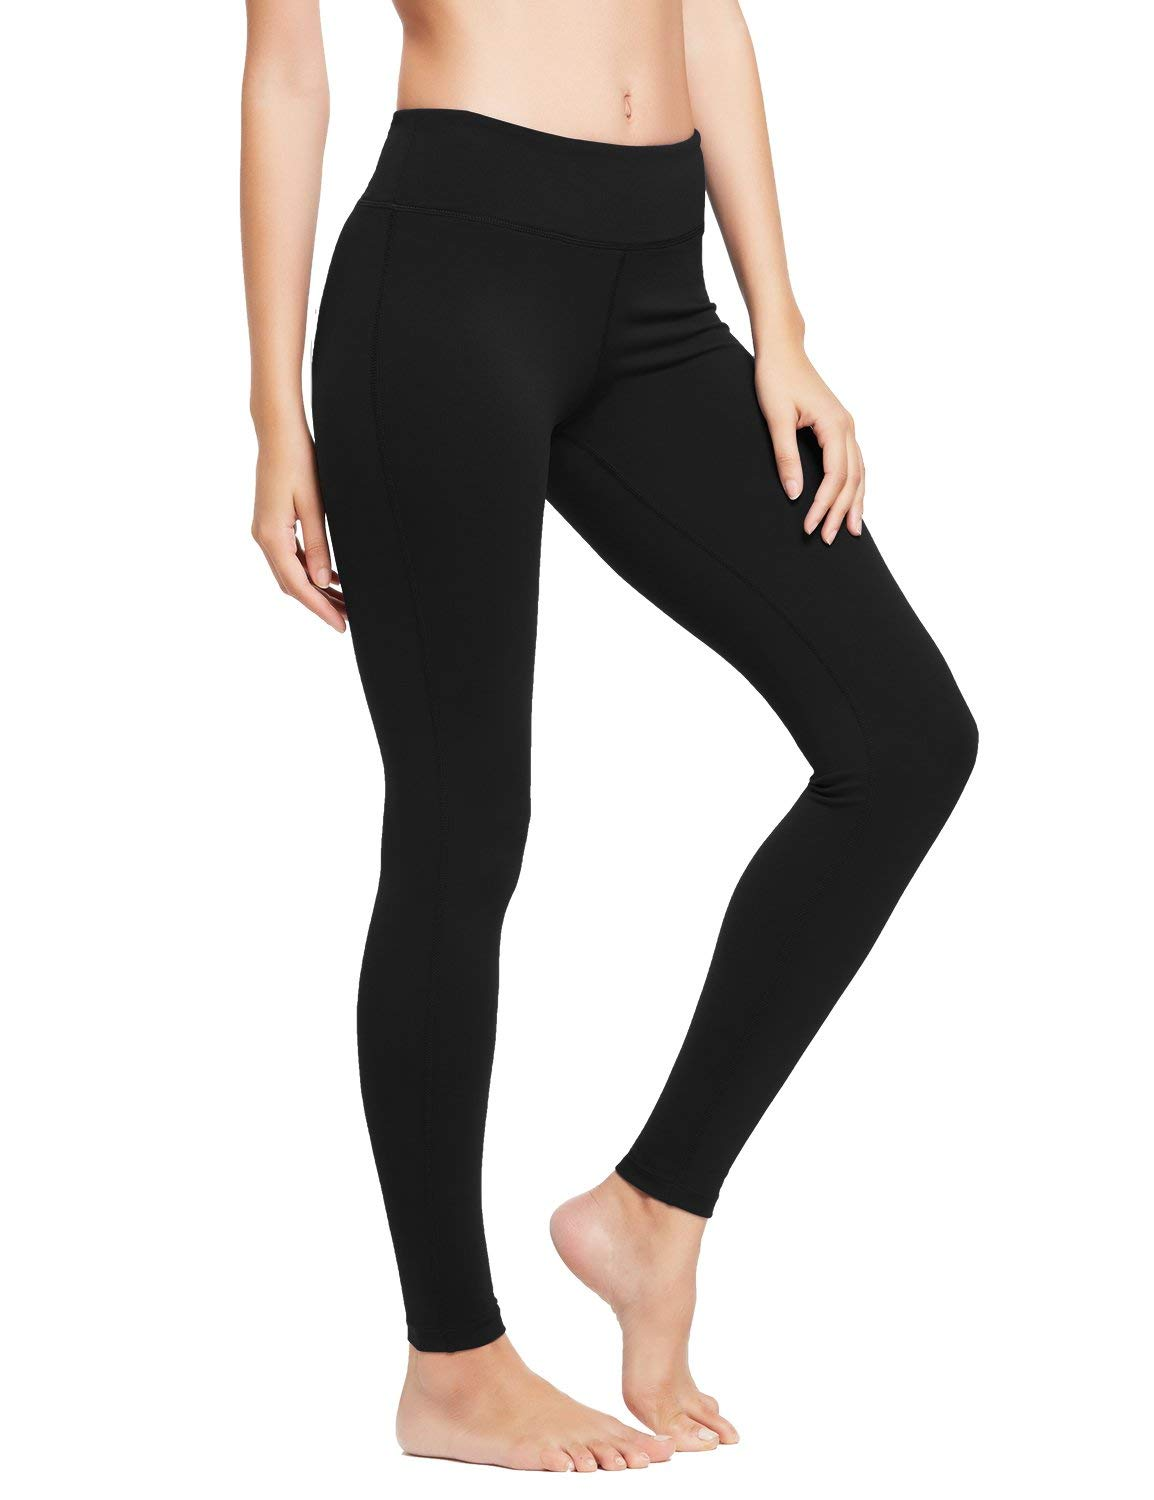 BALEAF Women's Ankle Legging Athletic Yoga Hiking Workout Running Pants Inner Pocket Non See-Through Black Size XL